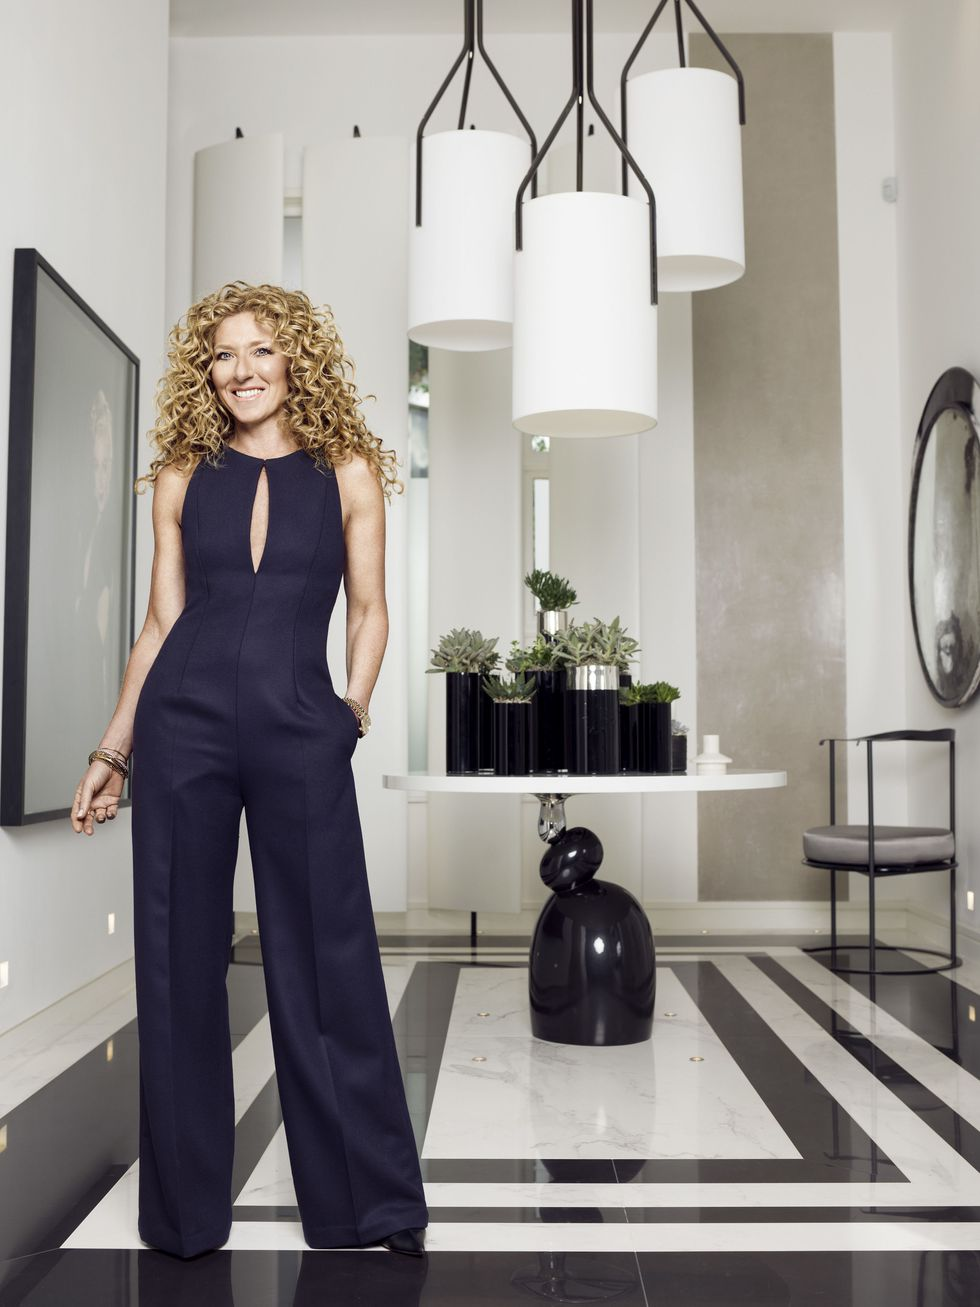 Leading Ladies Of Design 20 Famous Interior Designers Architects